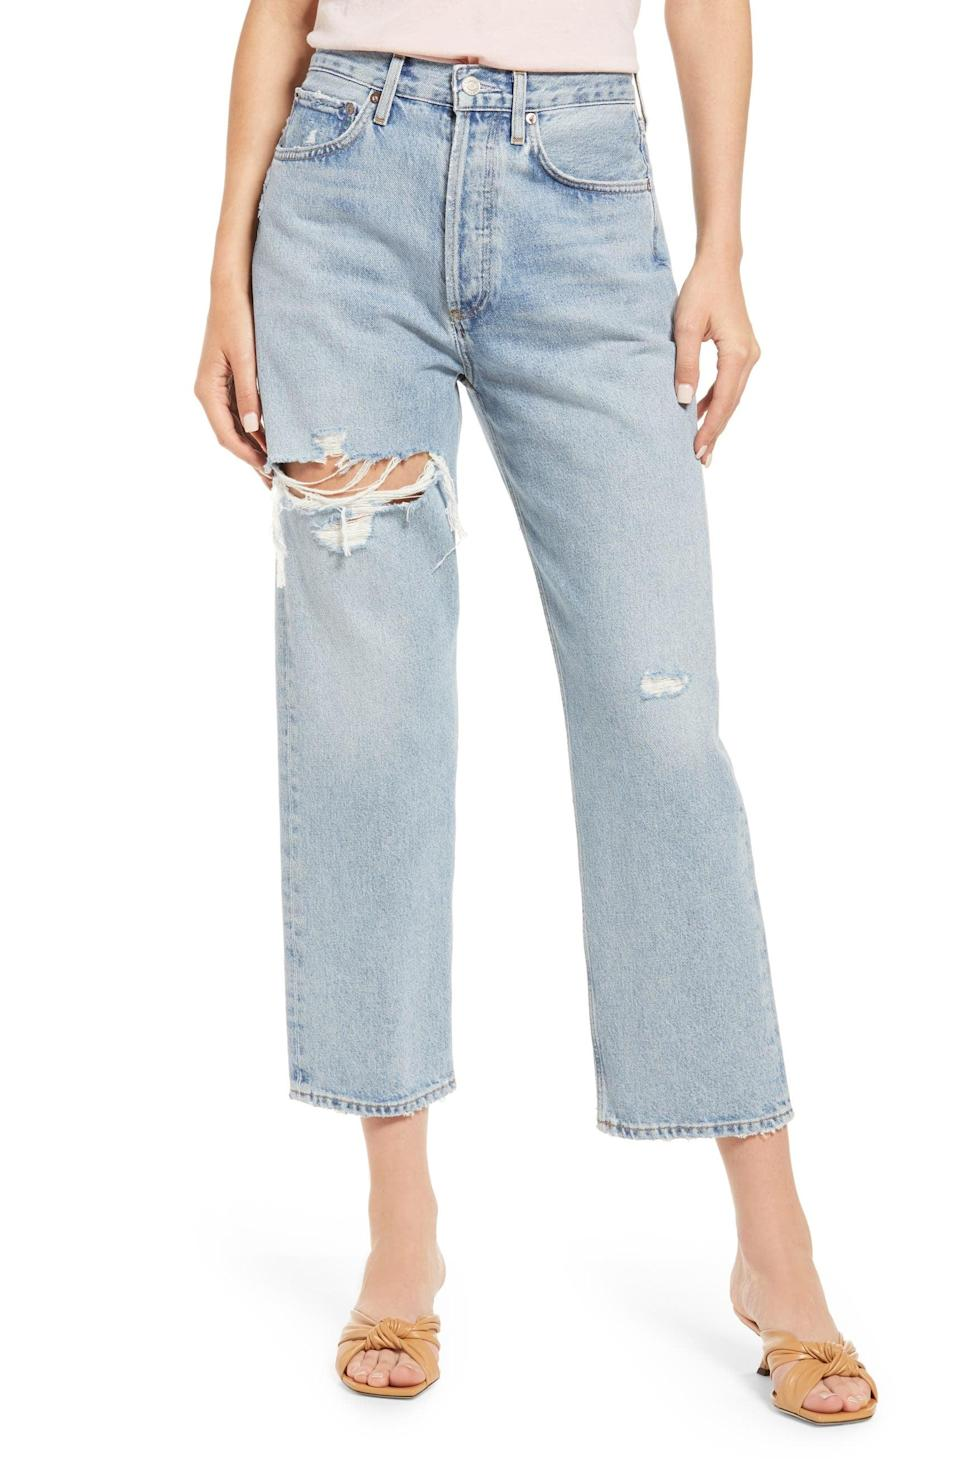 """<p>I can't stop raving about Agolde denim. I own <a href=""""https://www.popsugar.com/fashion/agolde-jeans-review-48227258"""" class=""""link rapid-noclick-resp"""" rel=""""nofollow noopener"""" target=""""_blank"""" data-ylk=""""slk:several pairs"""">several pairs</a>, and I would add these <span>Agolde '90s Ripped Crop Loose Fit Jeans</span> ($198) to my closet in a heartbeat.</p>"""